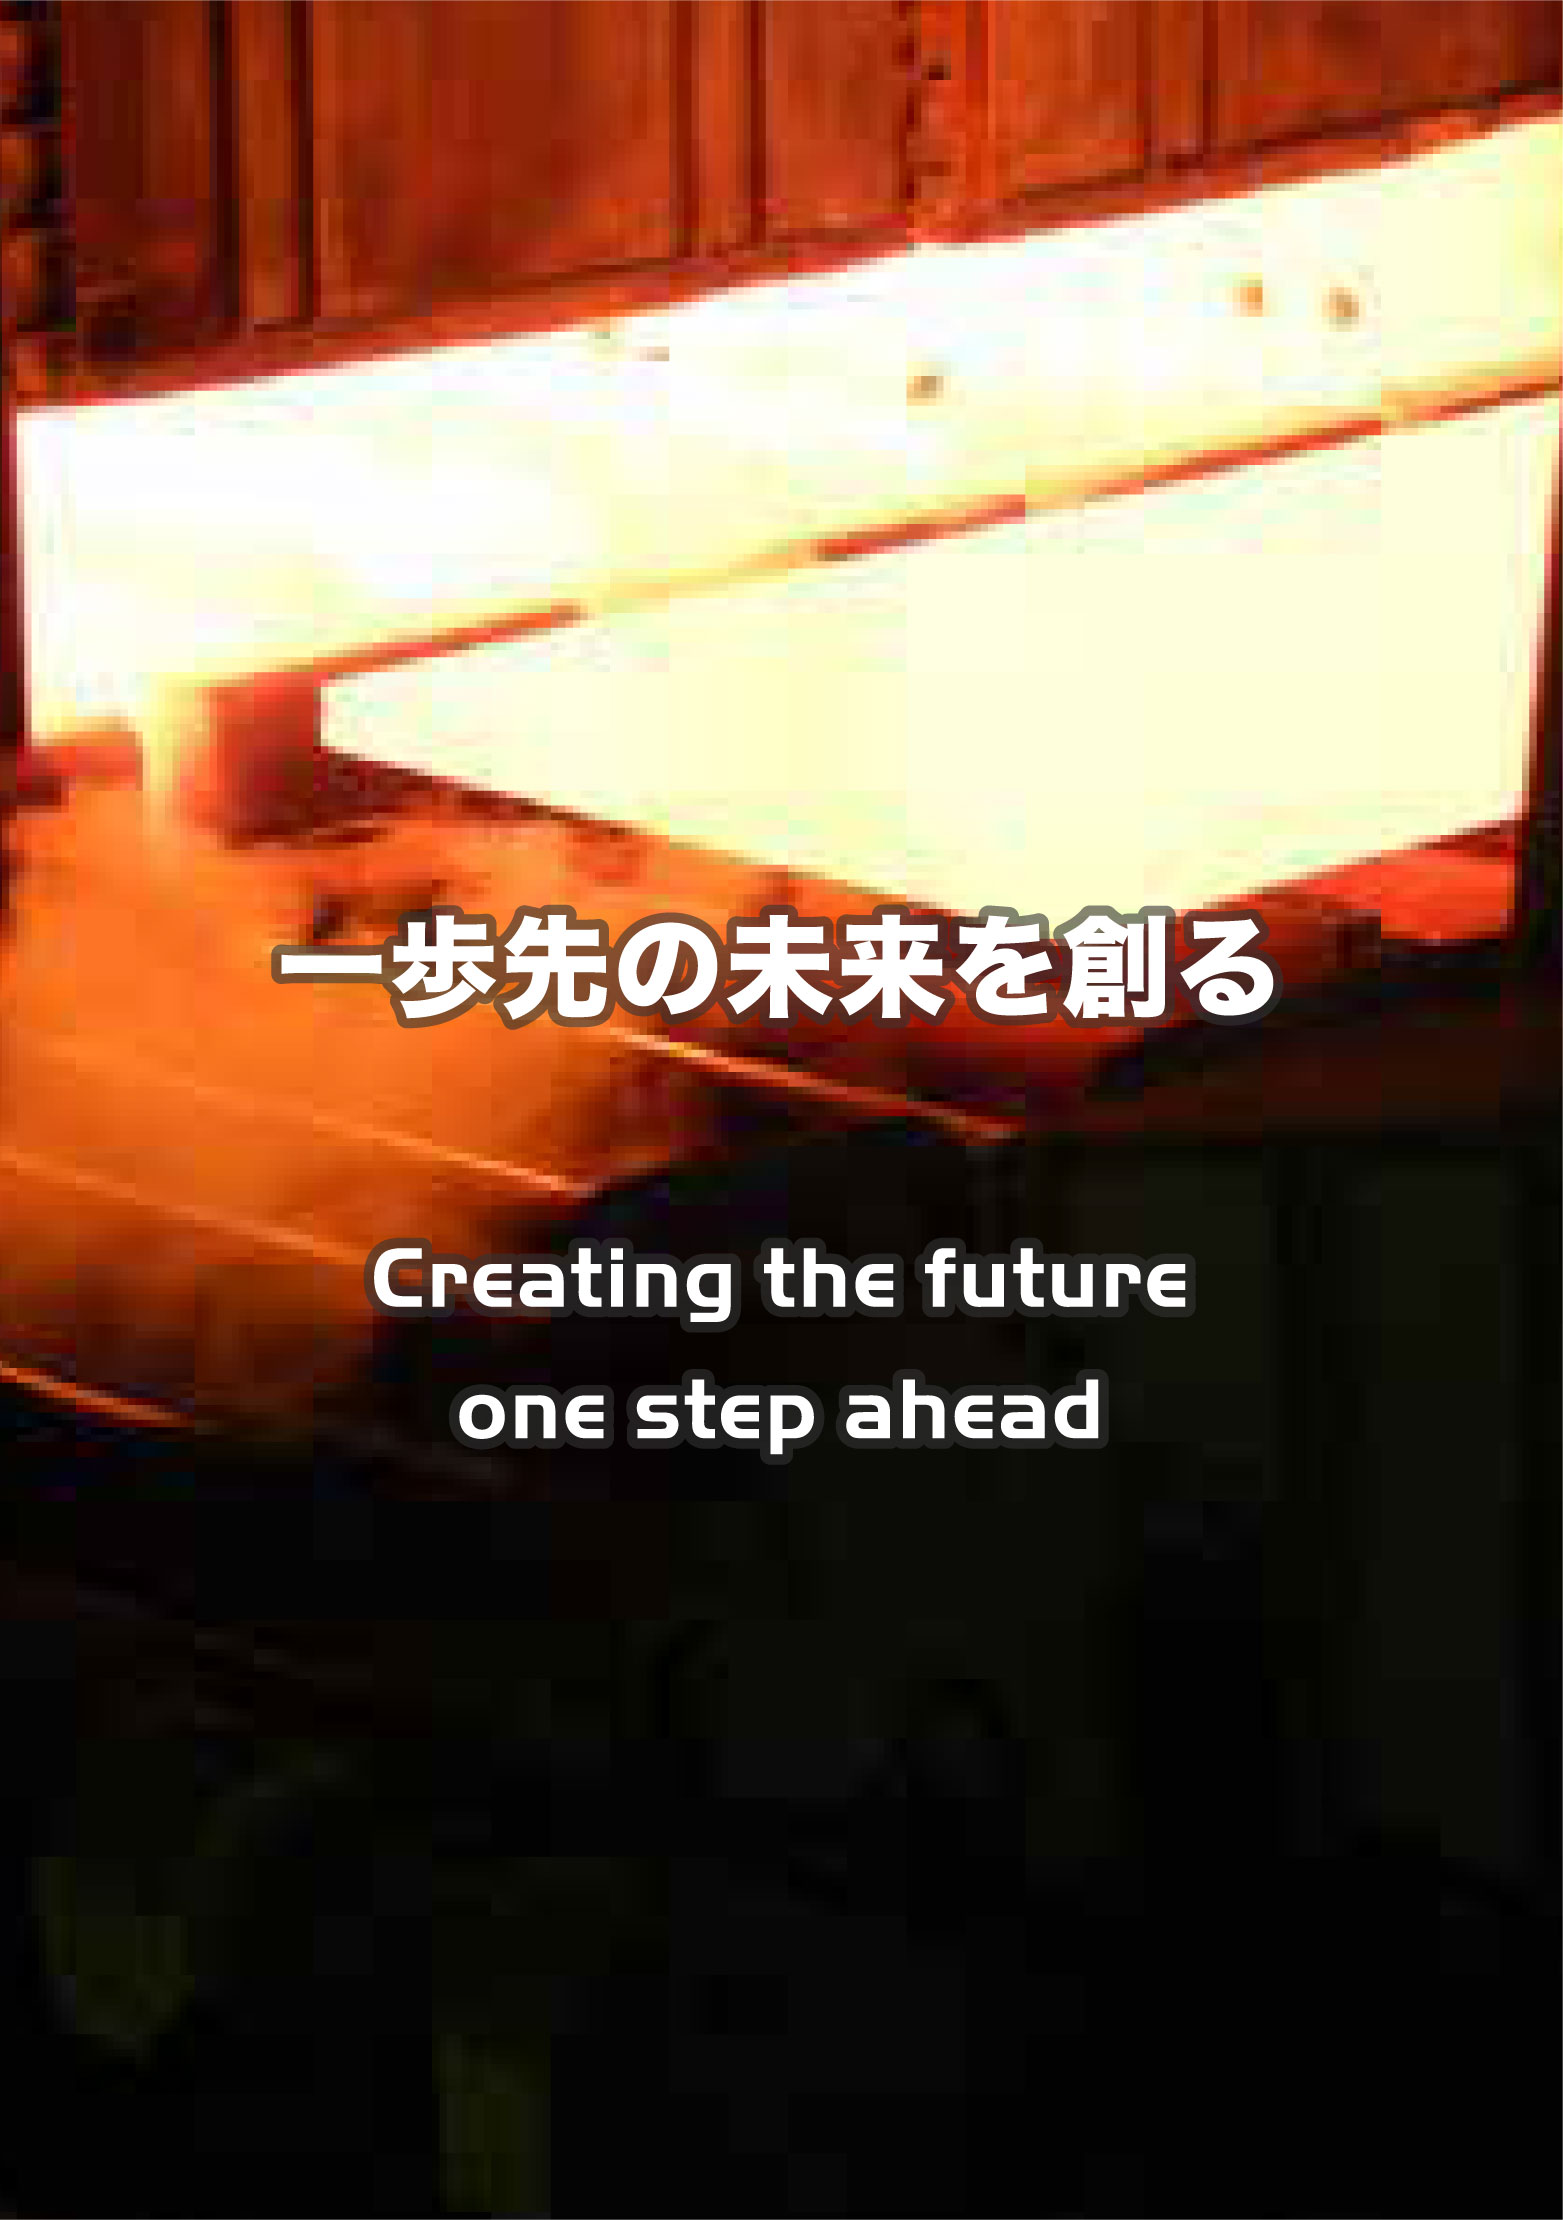 一歩先の未来を創る Creating the future one step ahead